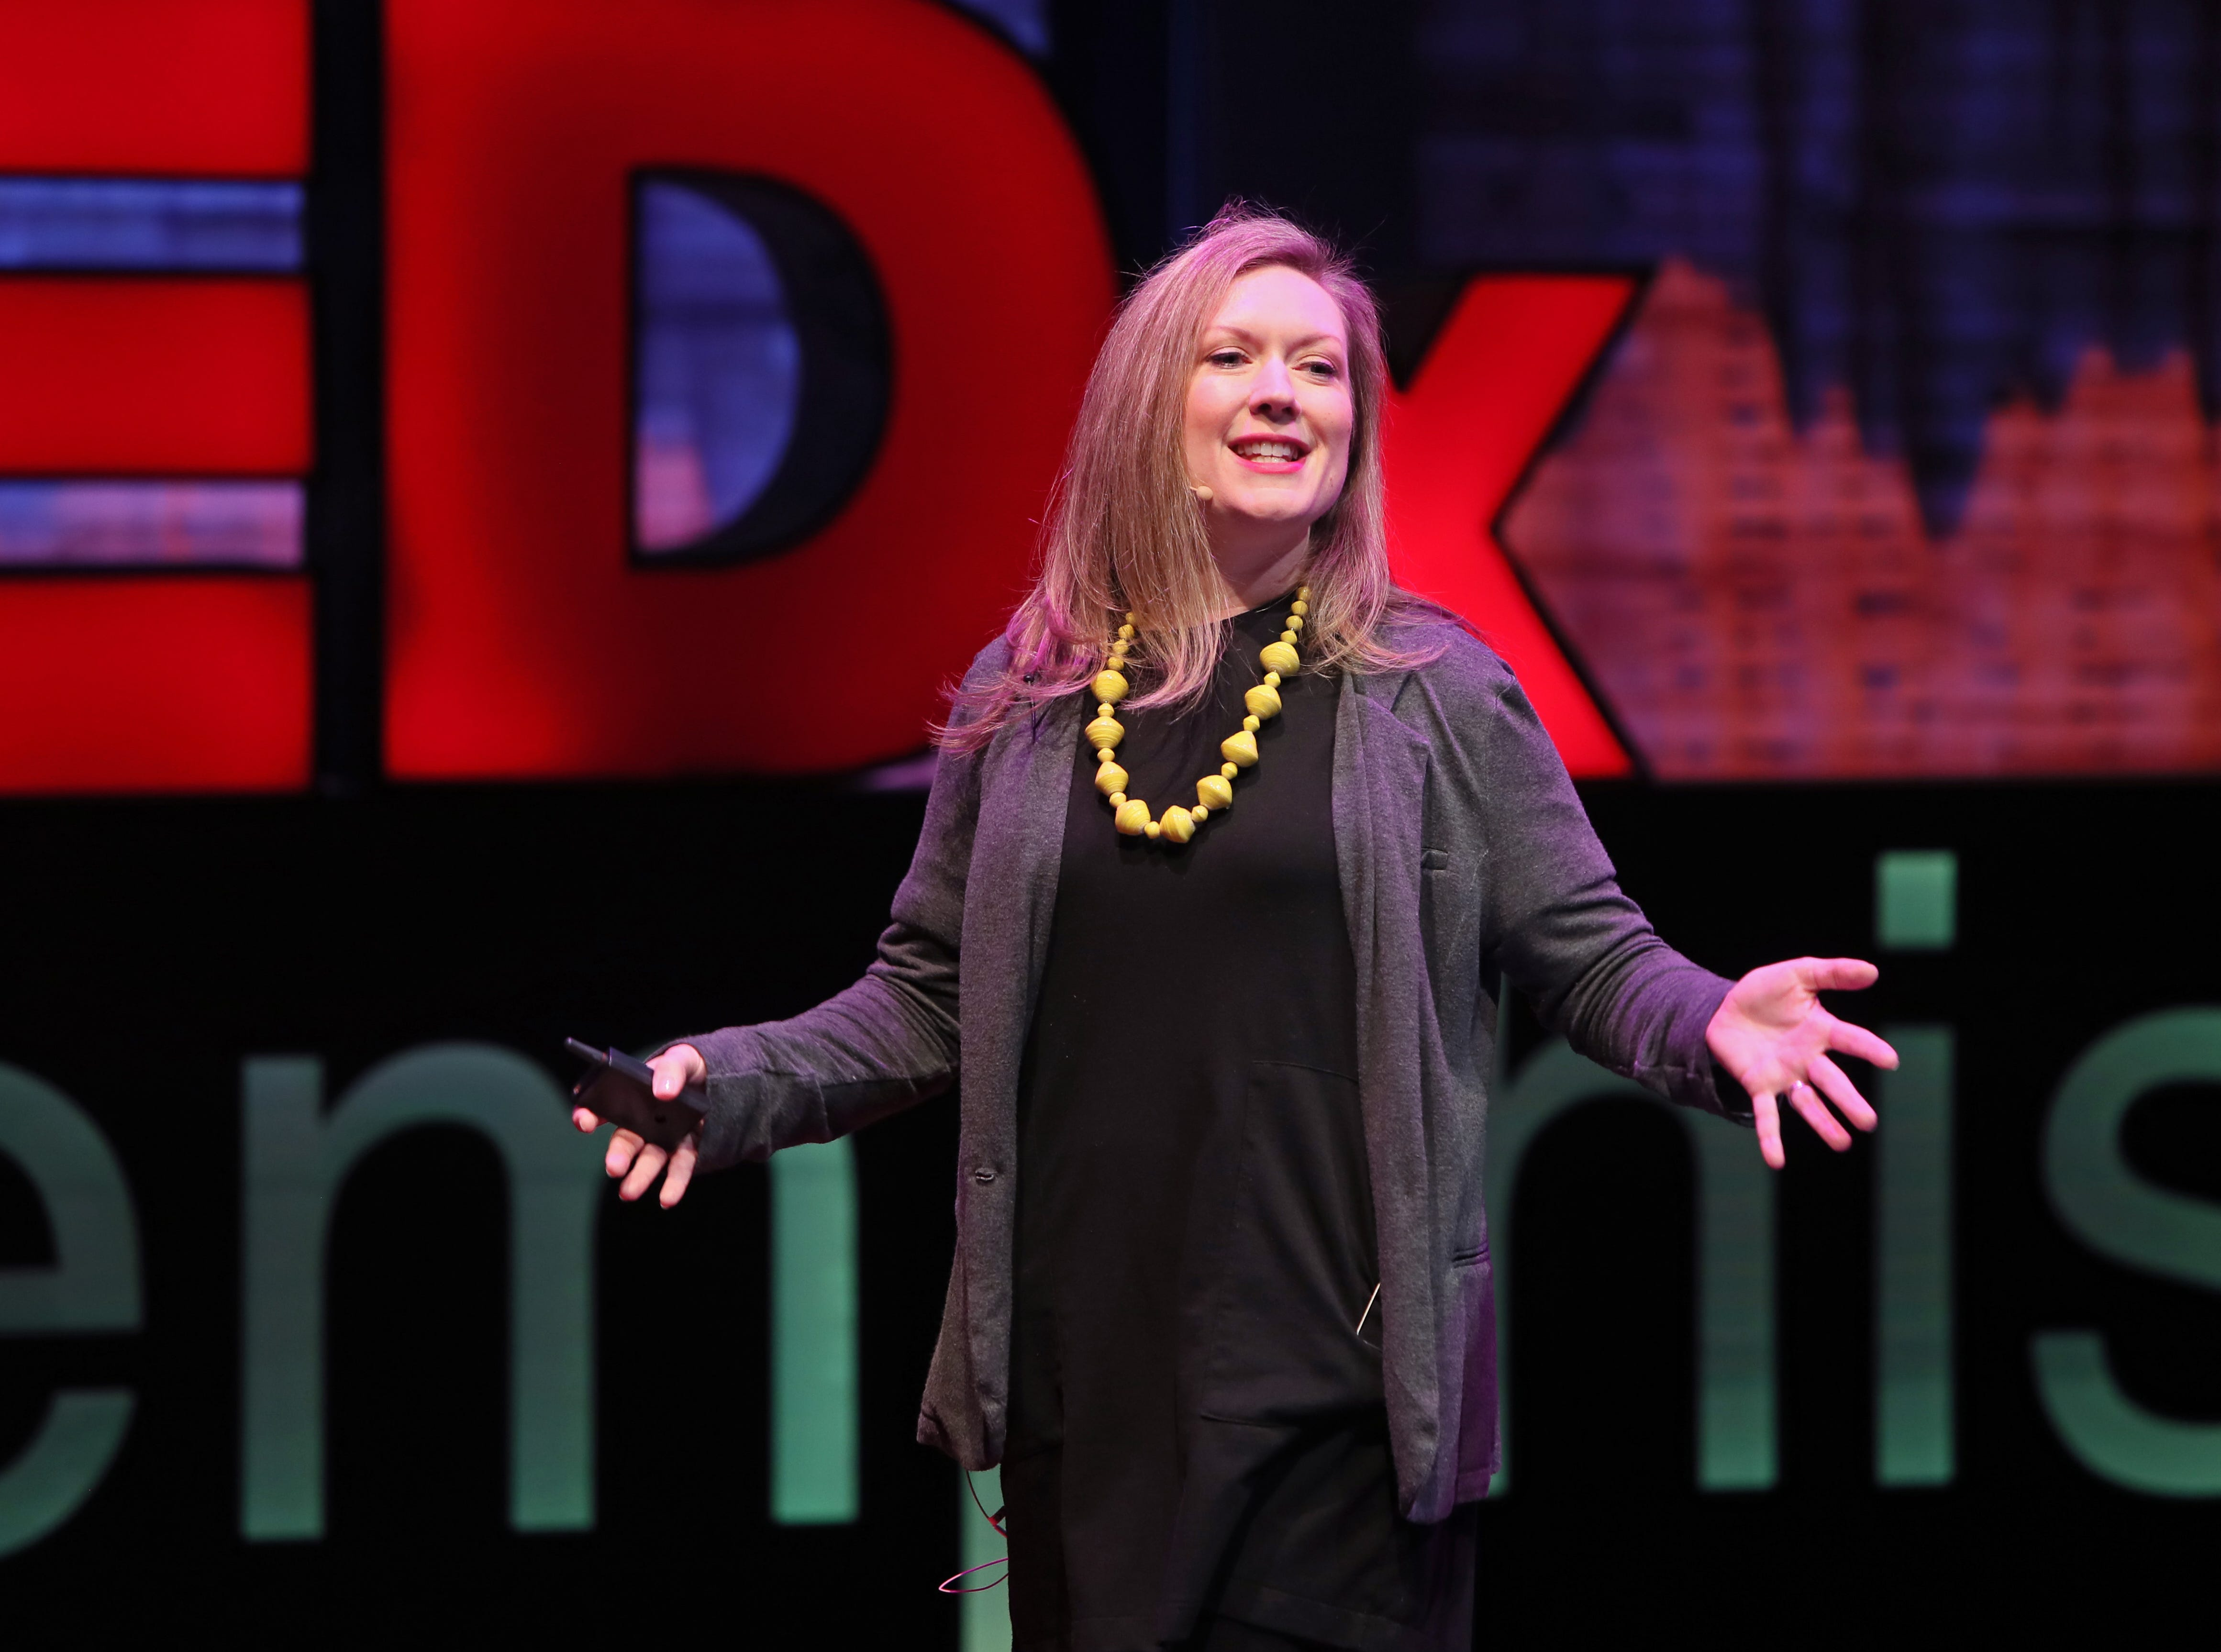 Amy Stack speaks about the generation in between the Millennials and Generation X during a TEDx Memphis event at the Crosstown Arts Theatre Saturday, Feb. 2, 2019.